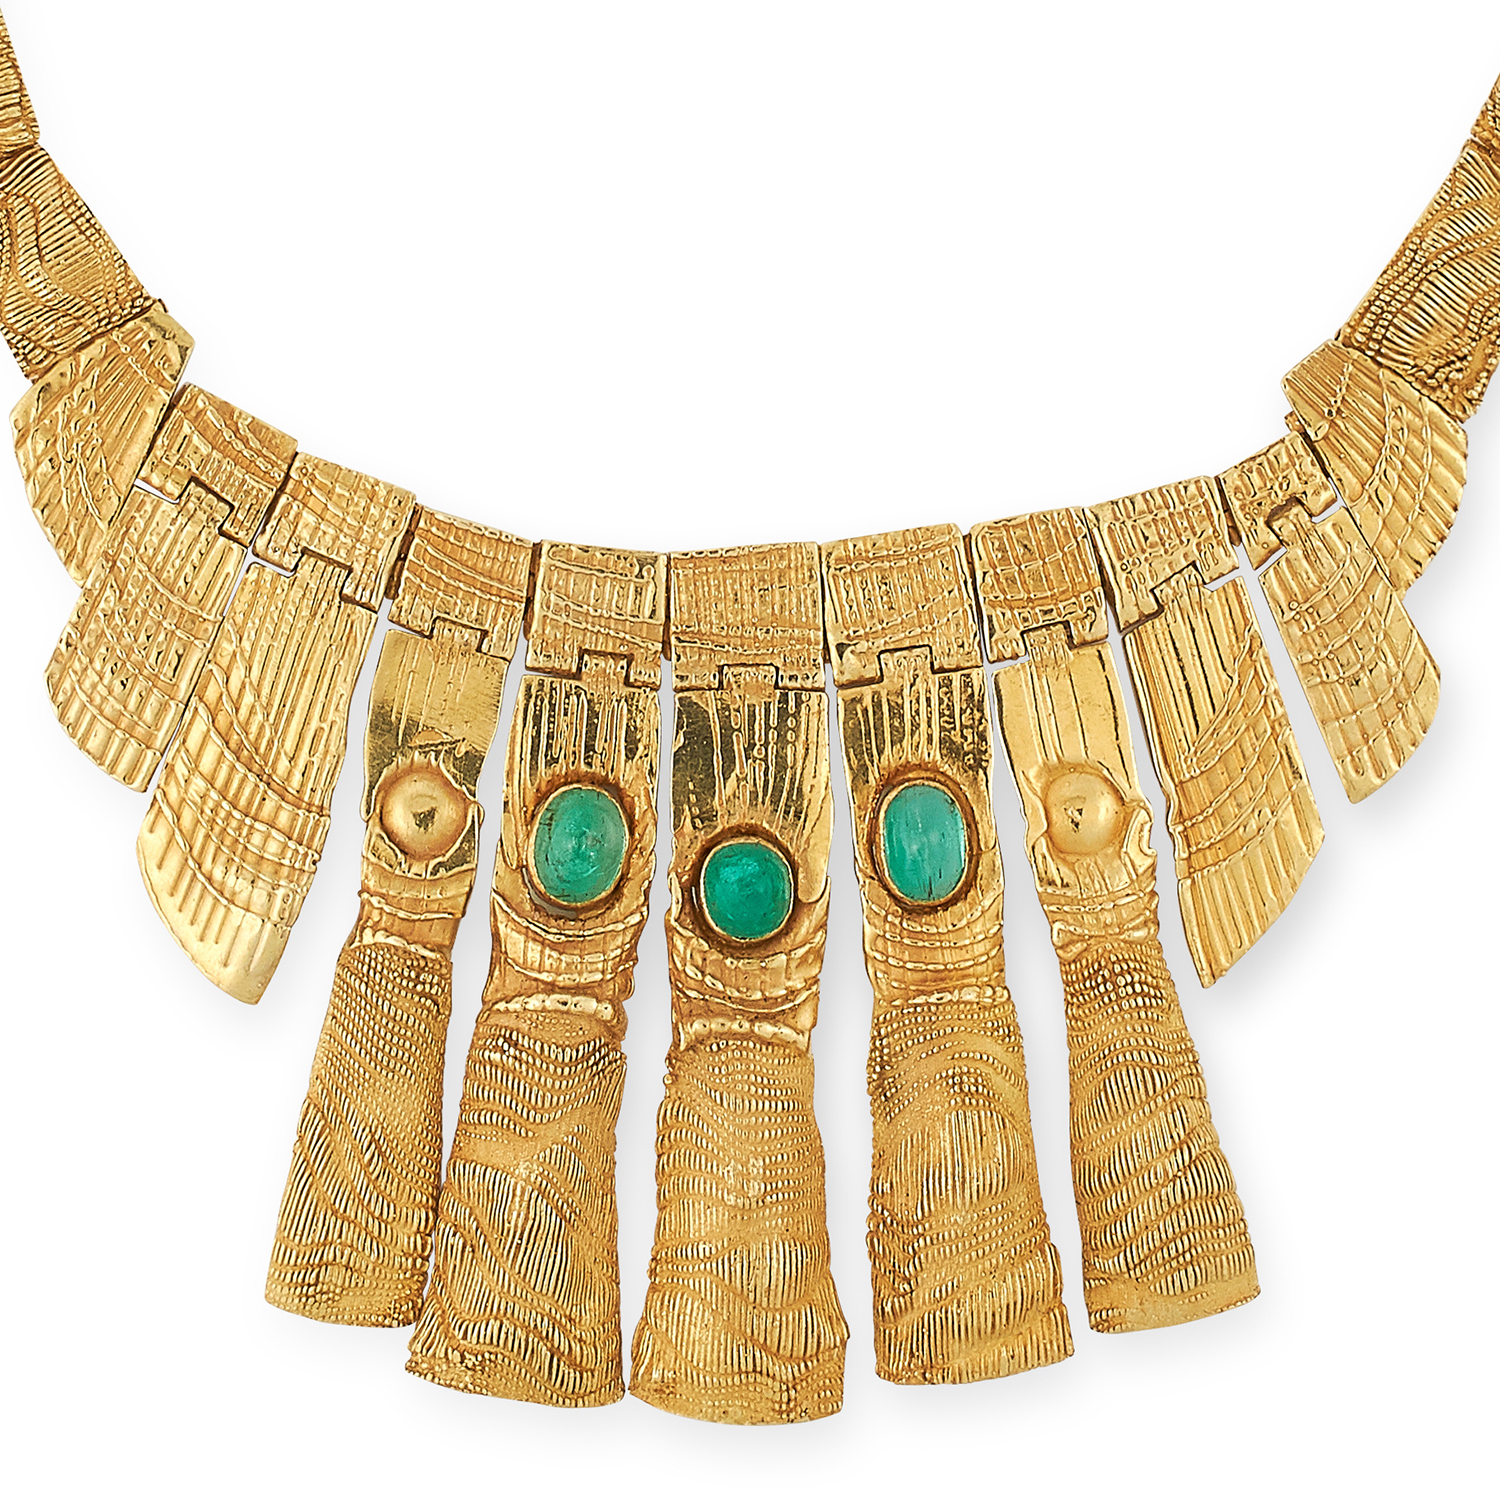 AN EMERALD NECKLACE, CHARLES DE TEMPLE 1973 formed of a fringe of graduated textured gold links, the - Image 2 of 2